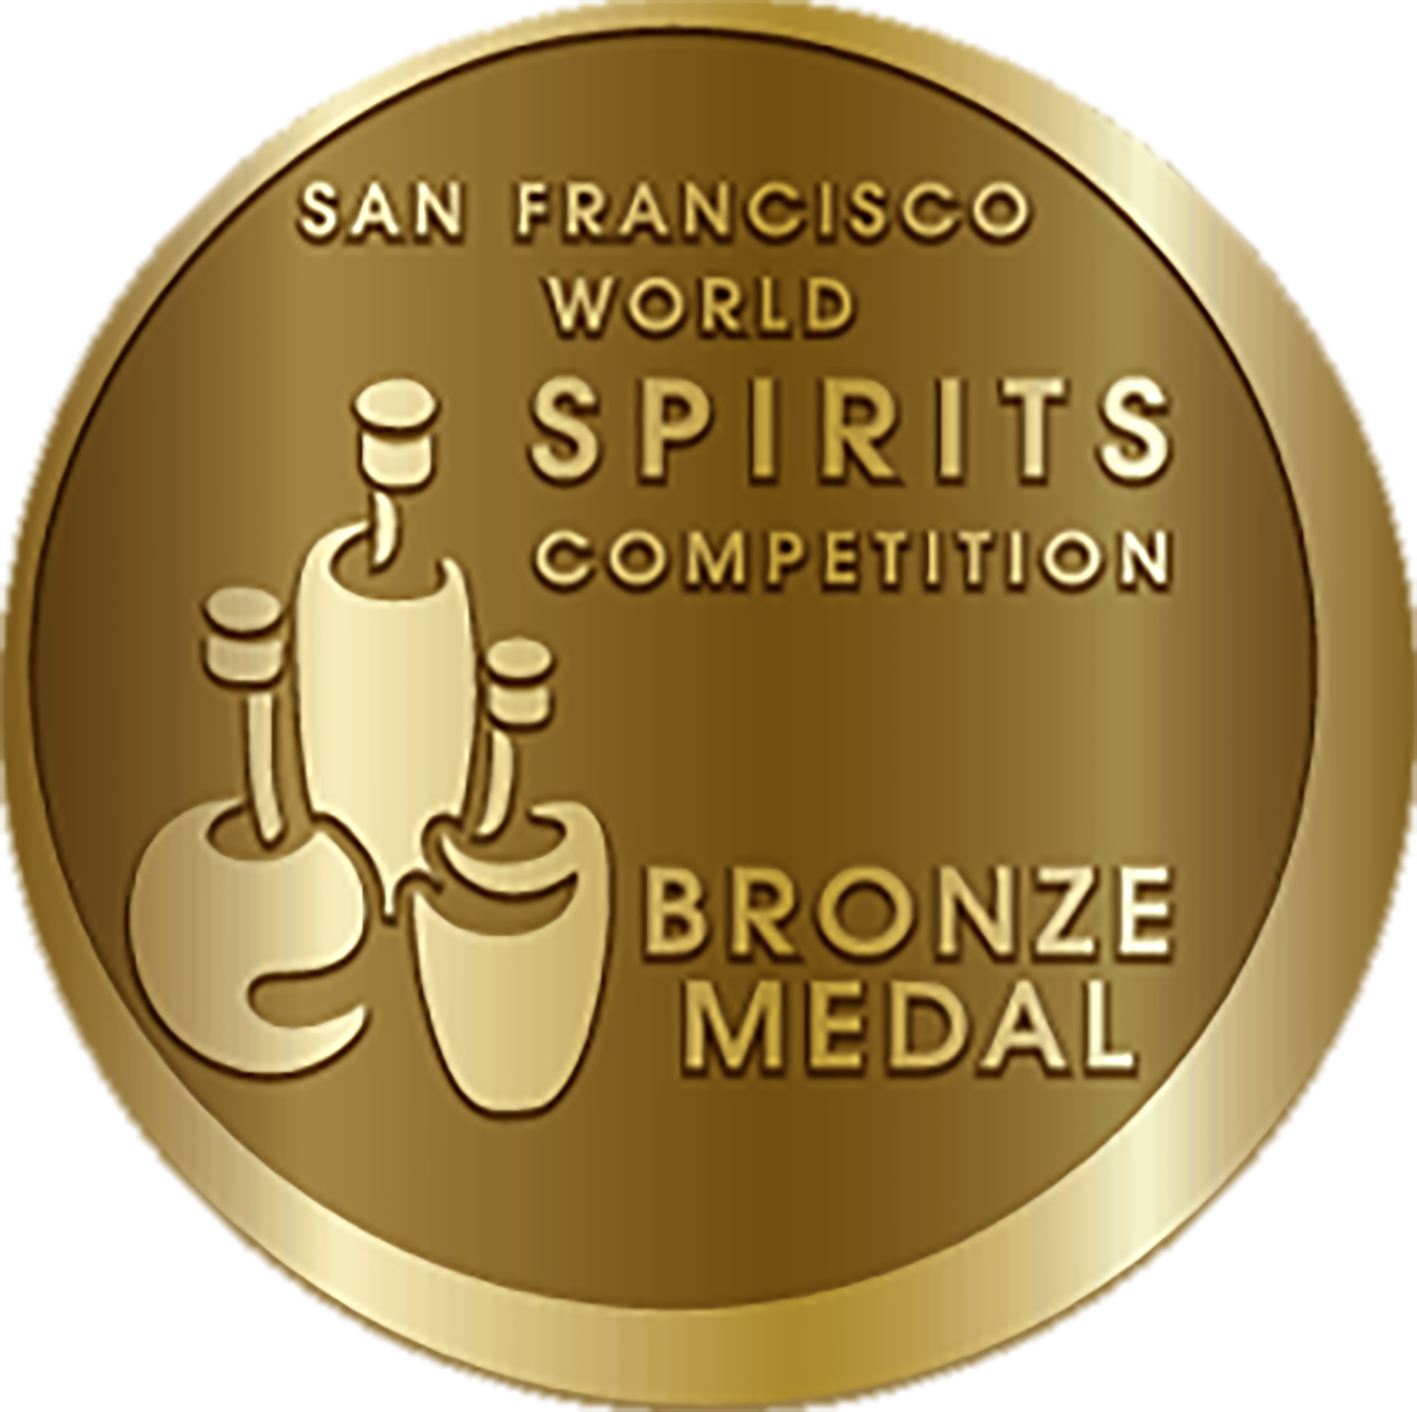 WINNER BRONZE MEDAL SAN FRANCISCO WORLD SPIRITS